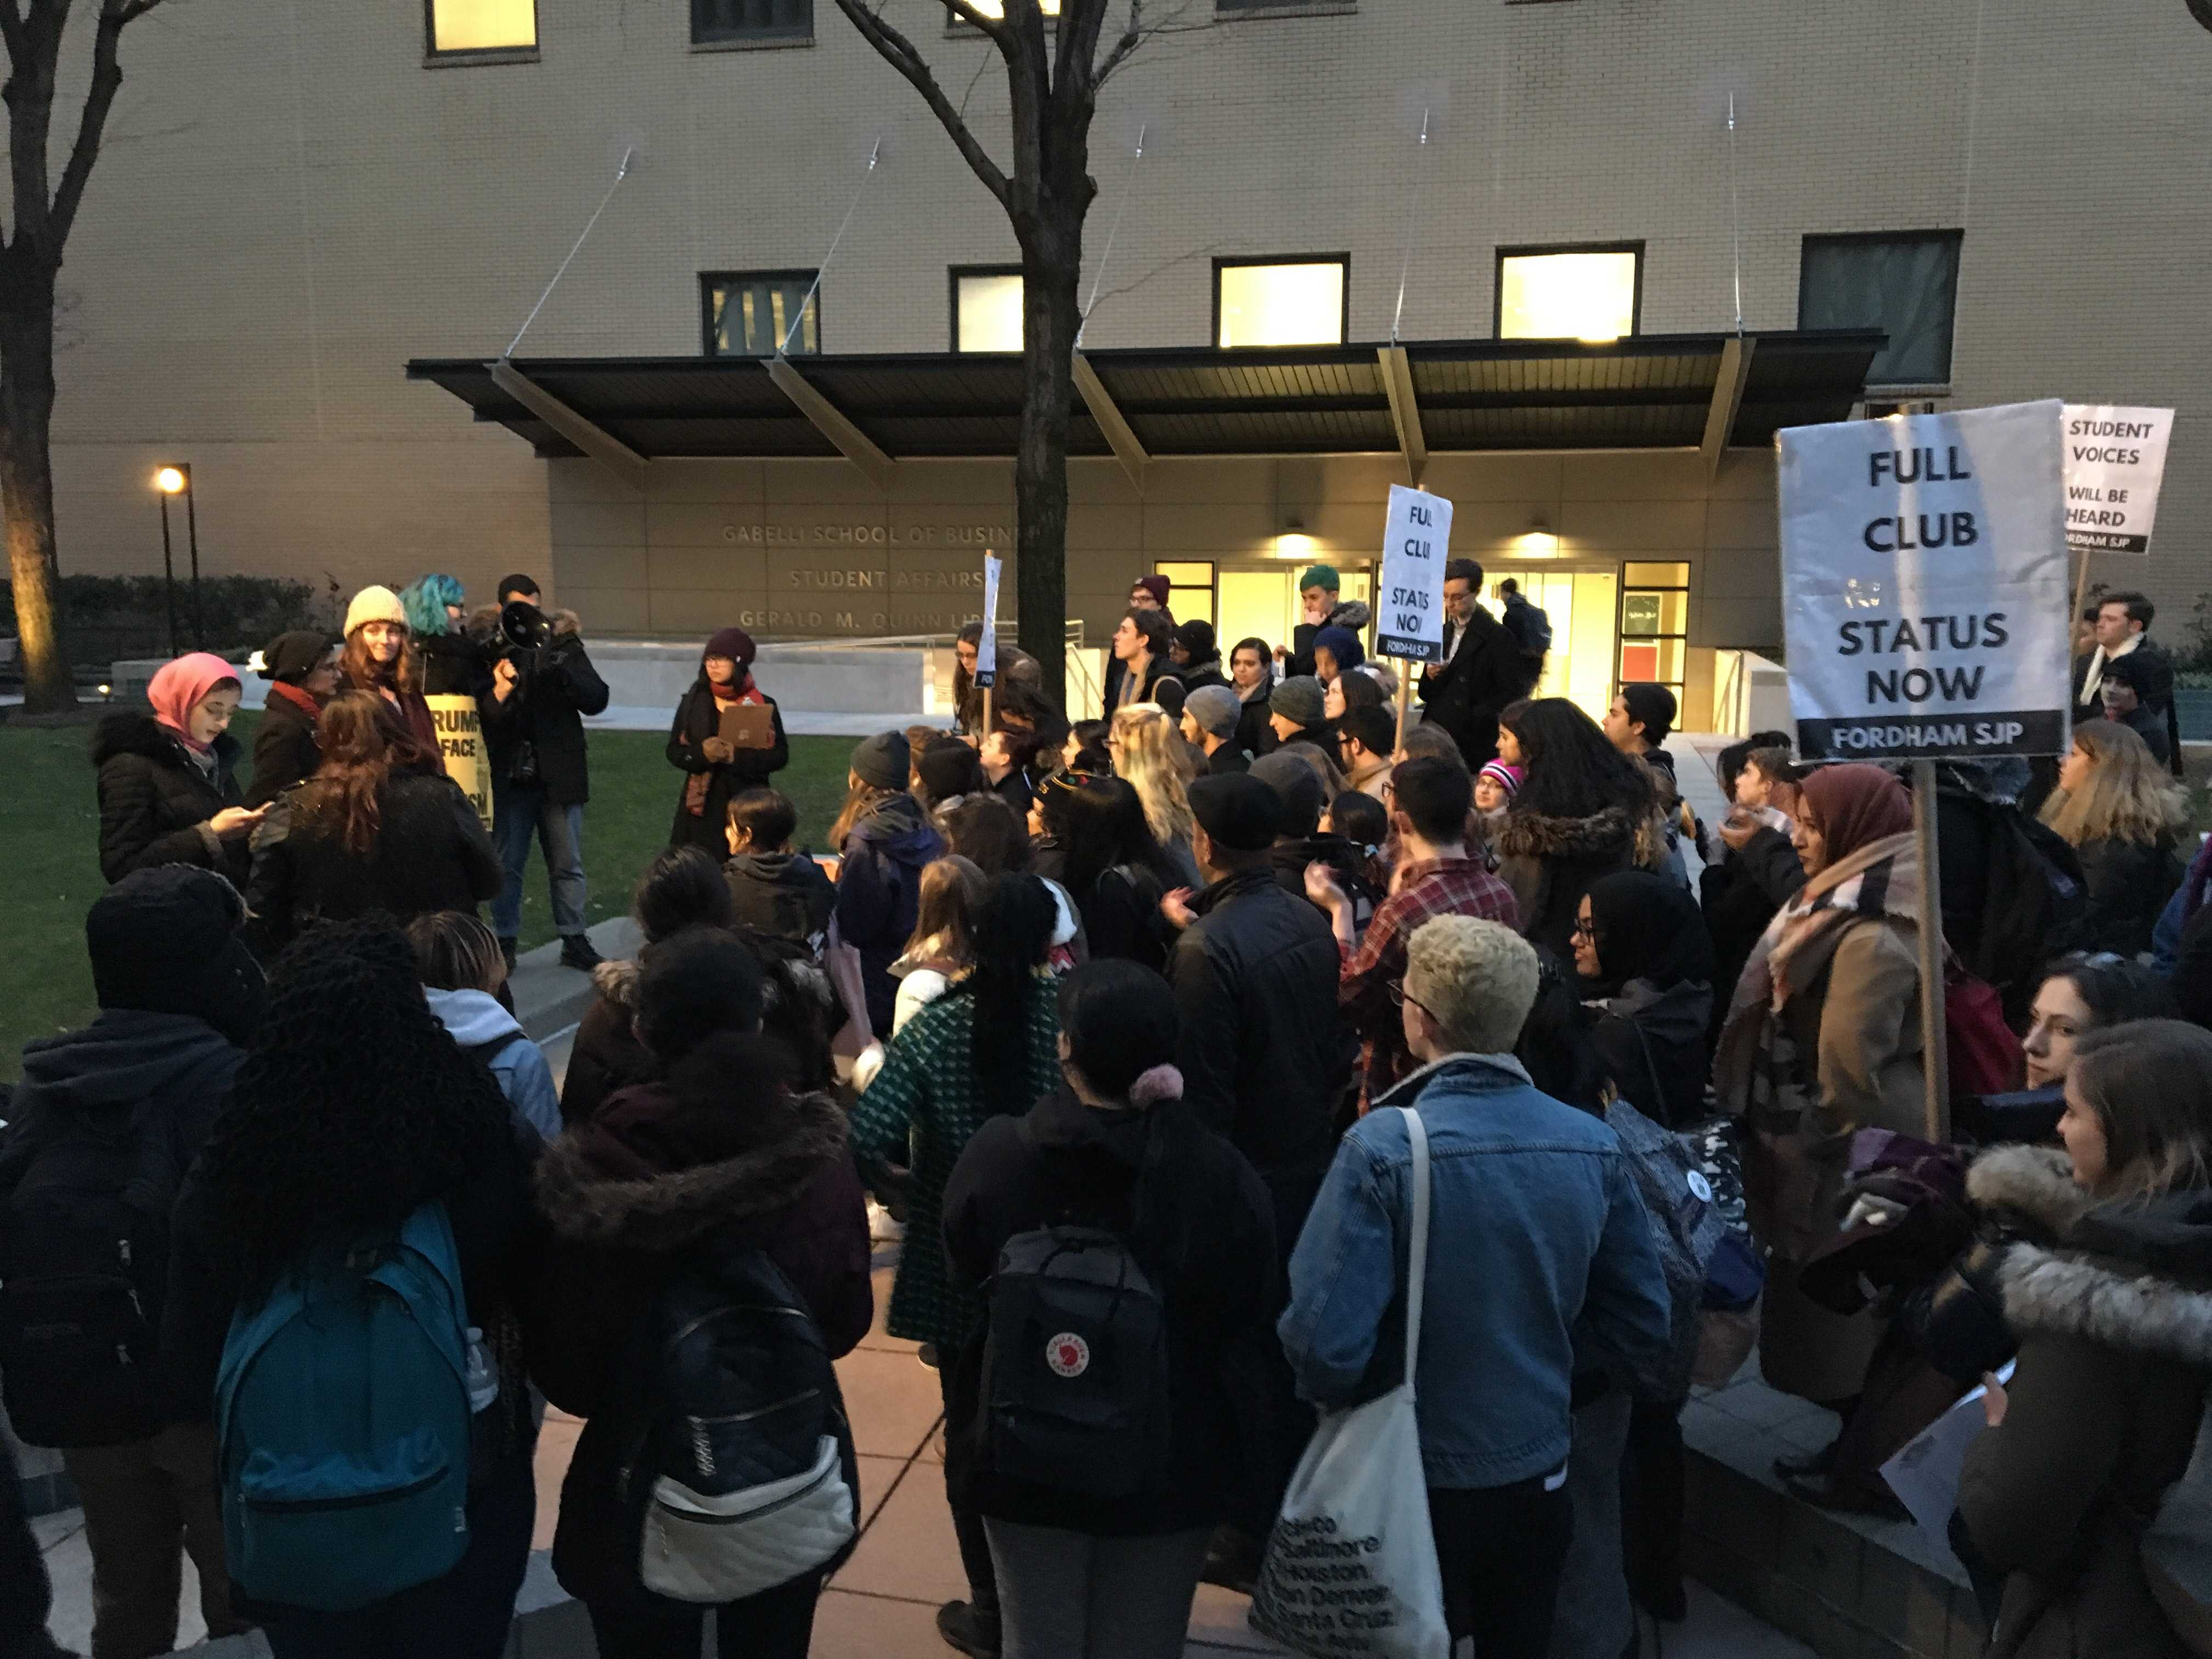 Protest organizer Sapphira Lurie will engage in a disciplinary hearing Wednesday, Feb. 22., in response to her unauthorized protest. (Victor Ordonez / The Fordham Ram)